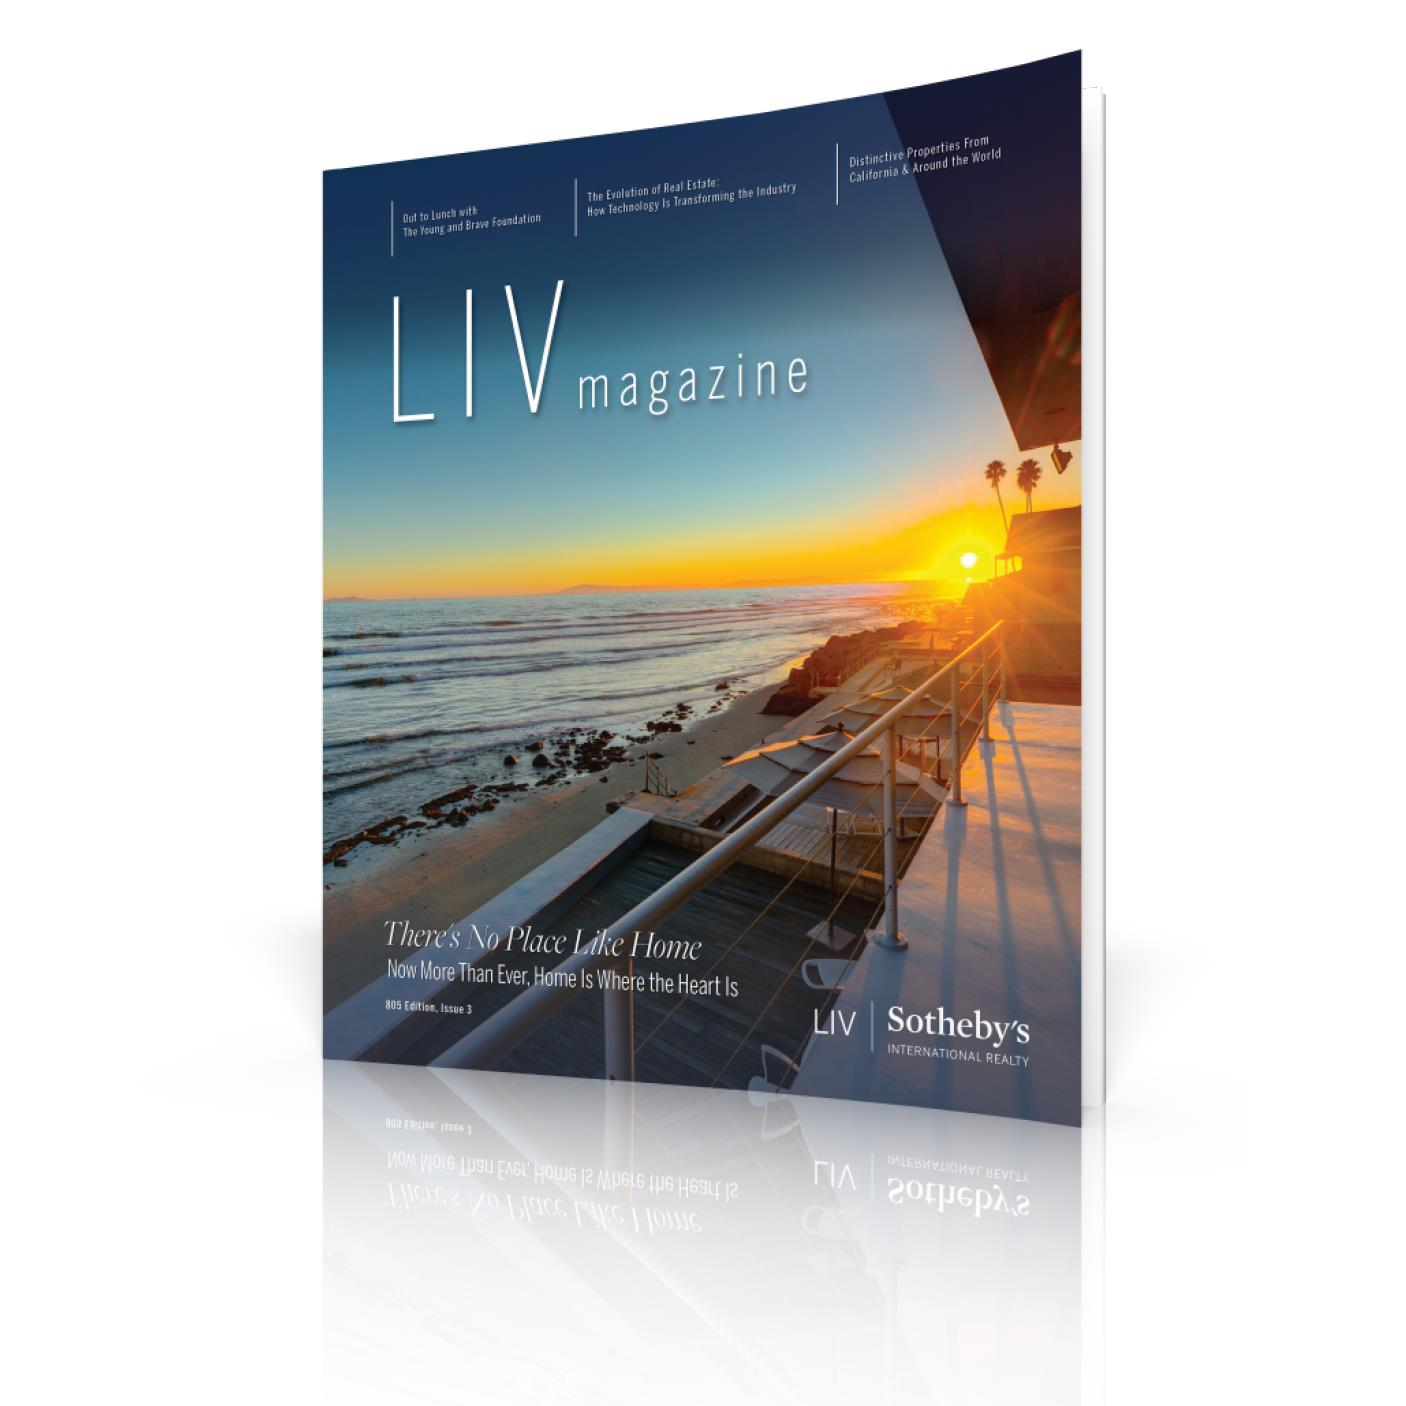 LIV Magazine 805 Edition, Issue 3